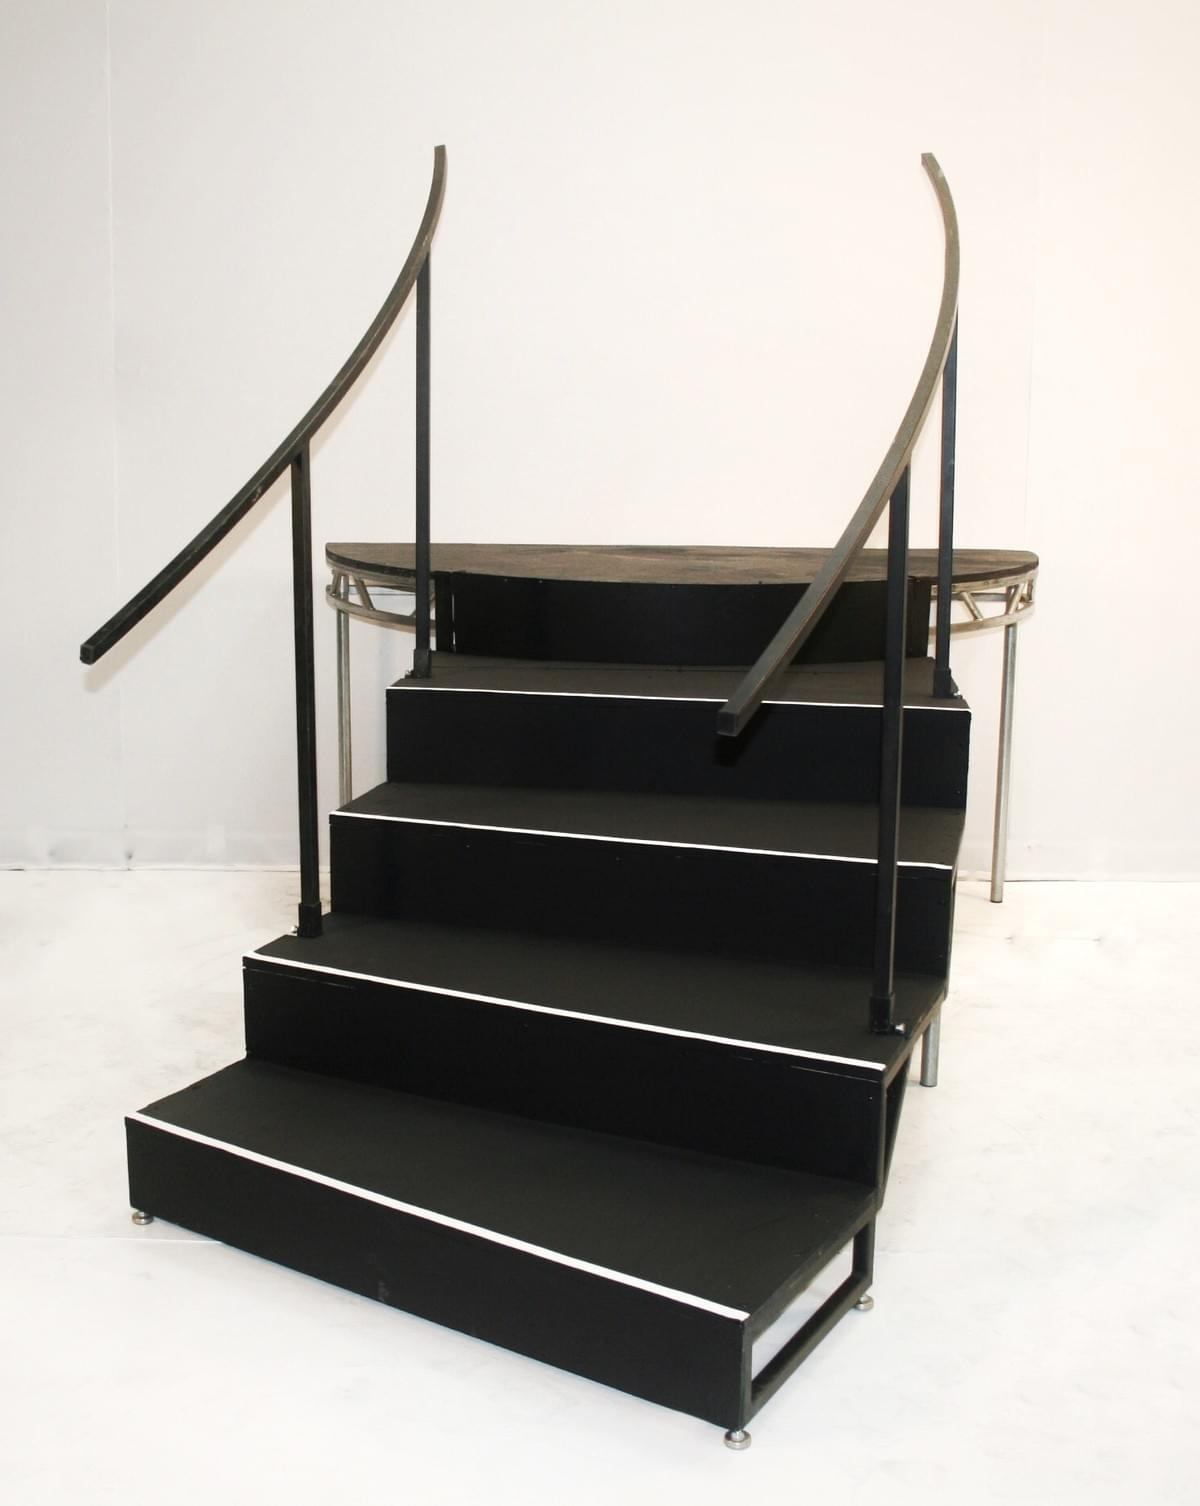 Curved Frame Stairs with Handrails